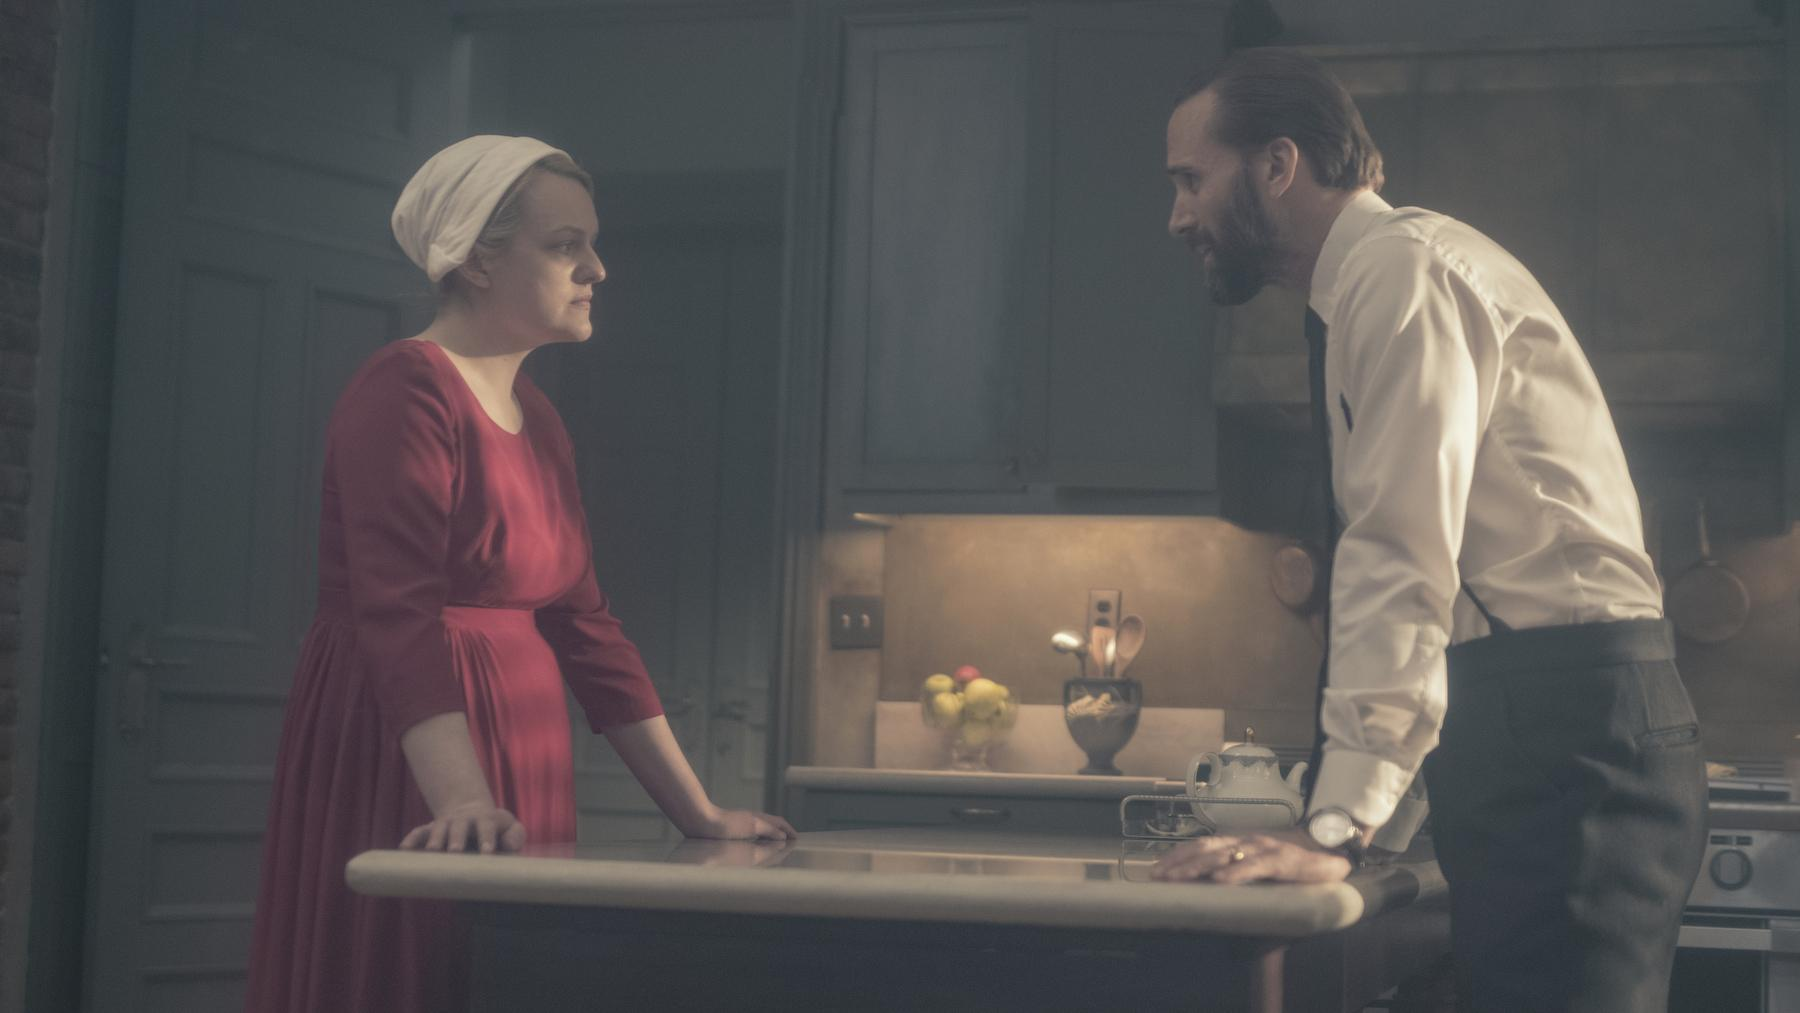 handmaid's tale season 3 - photo #24